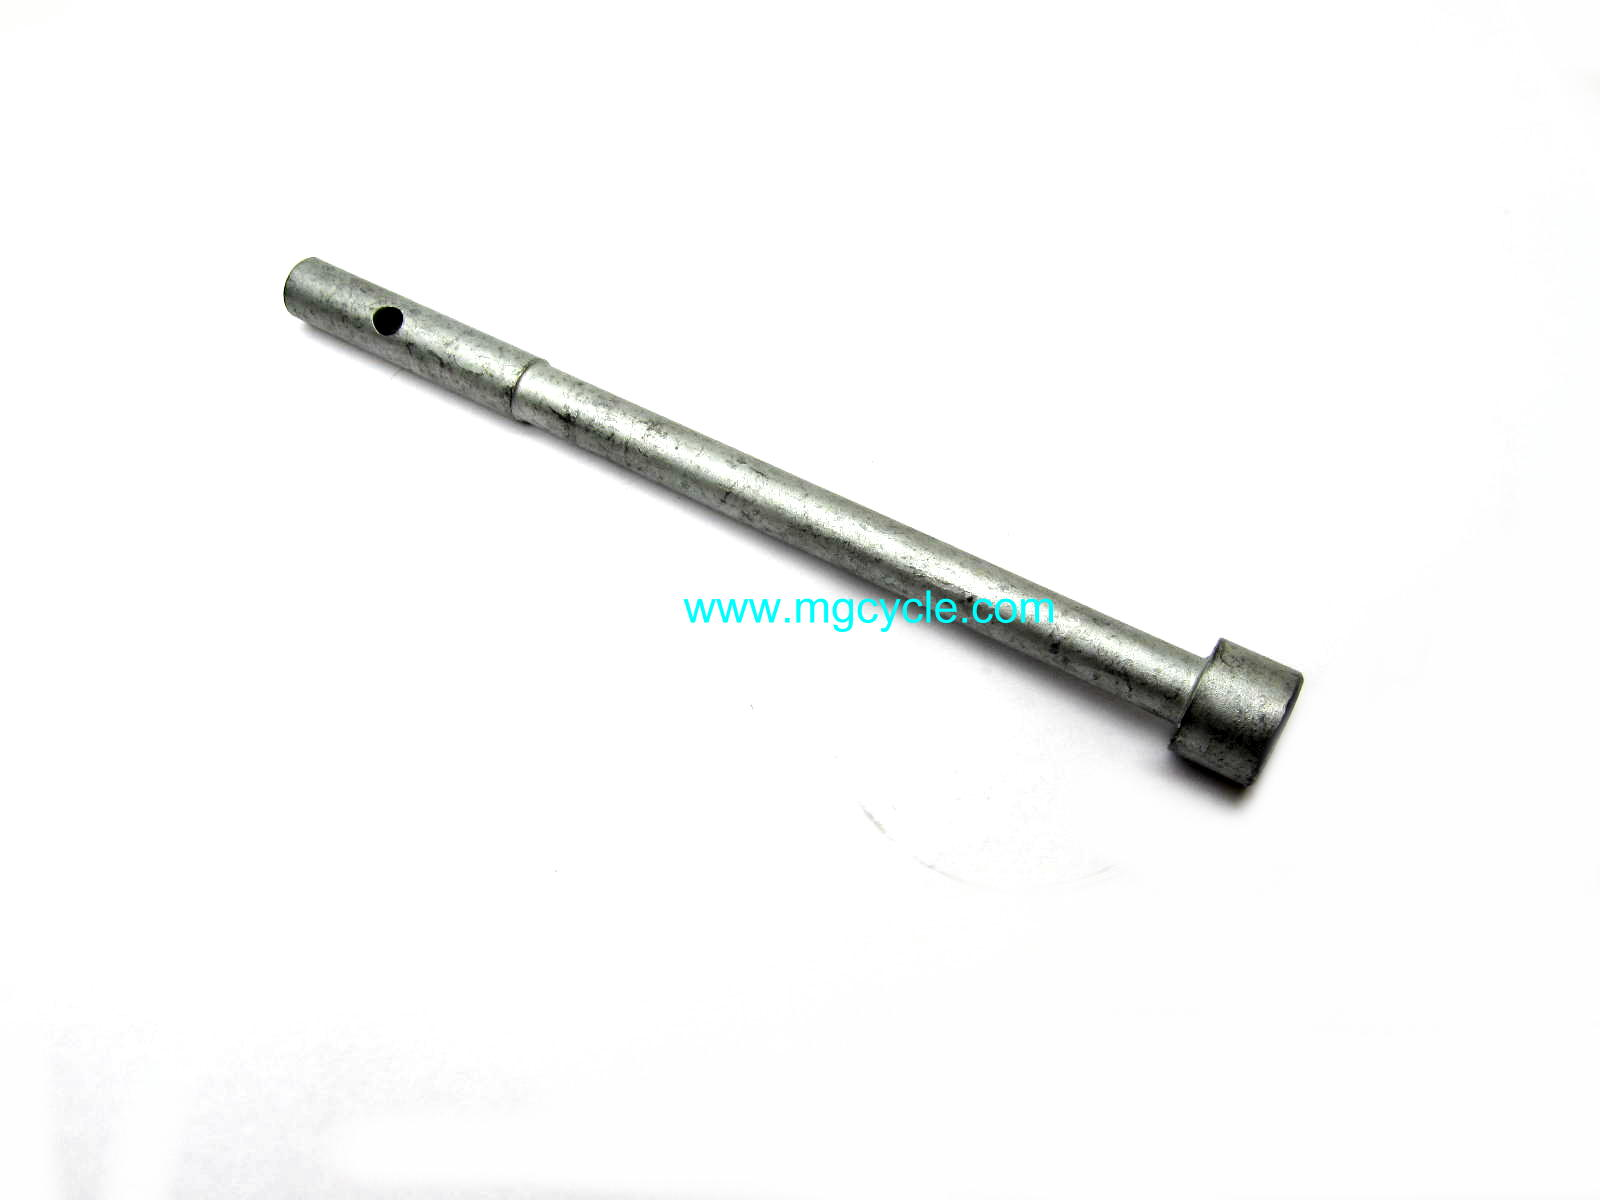 V11 Sport/LeMans Scura Tenni handlebar weight retaining rod